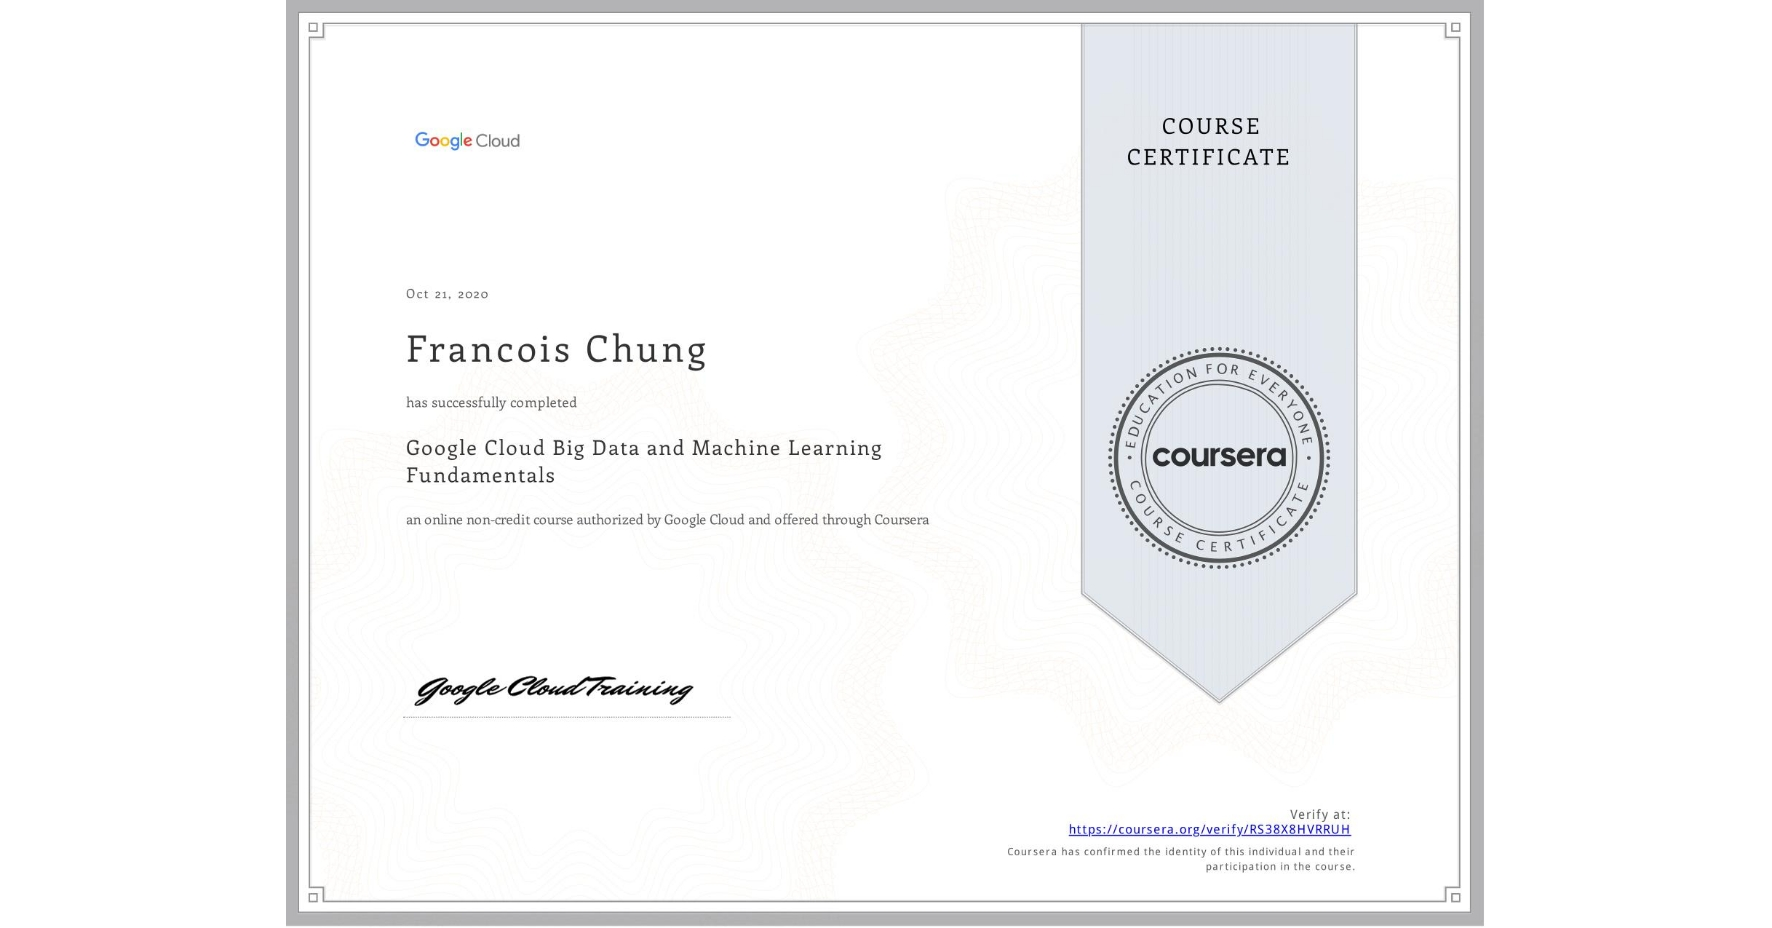 View certificate for Francois Chung, Google Cloud Big Data and Machine Learning Fundamentals, an online non-credit course authorized by Google Cloud and offered through Coursera